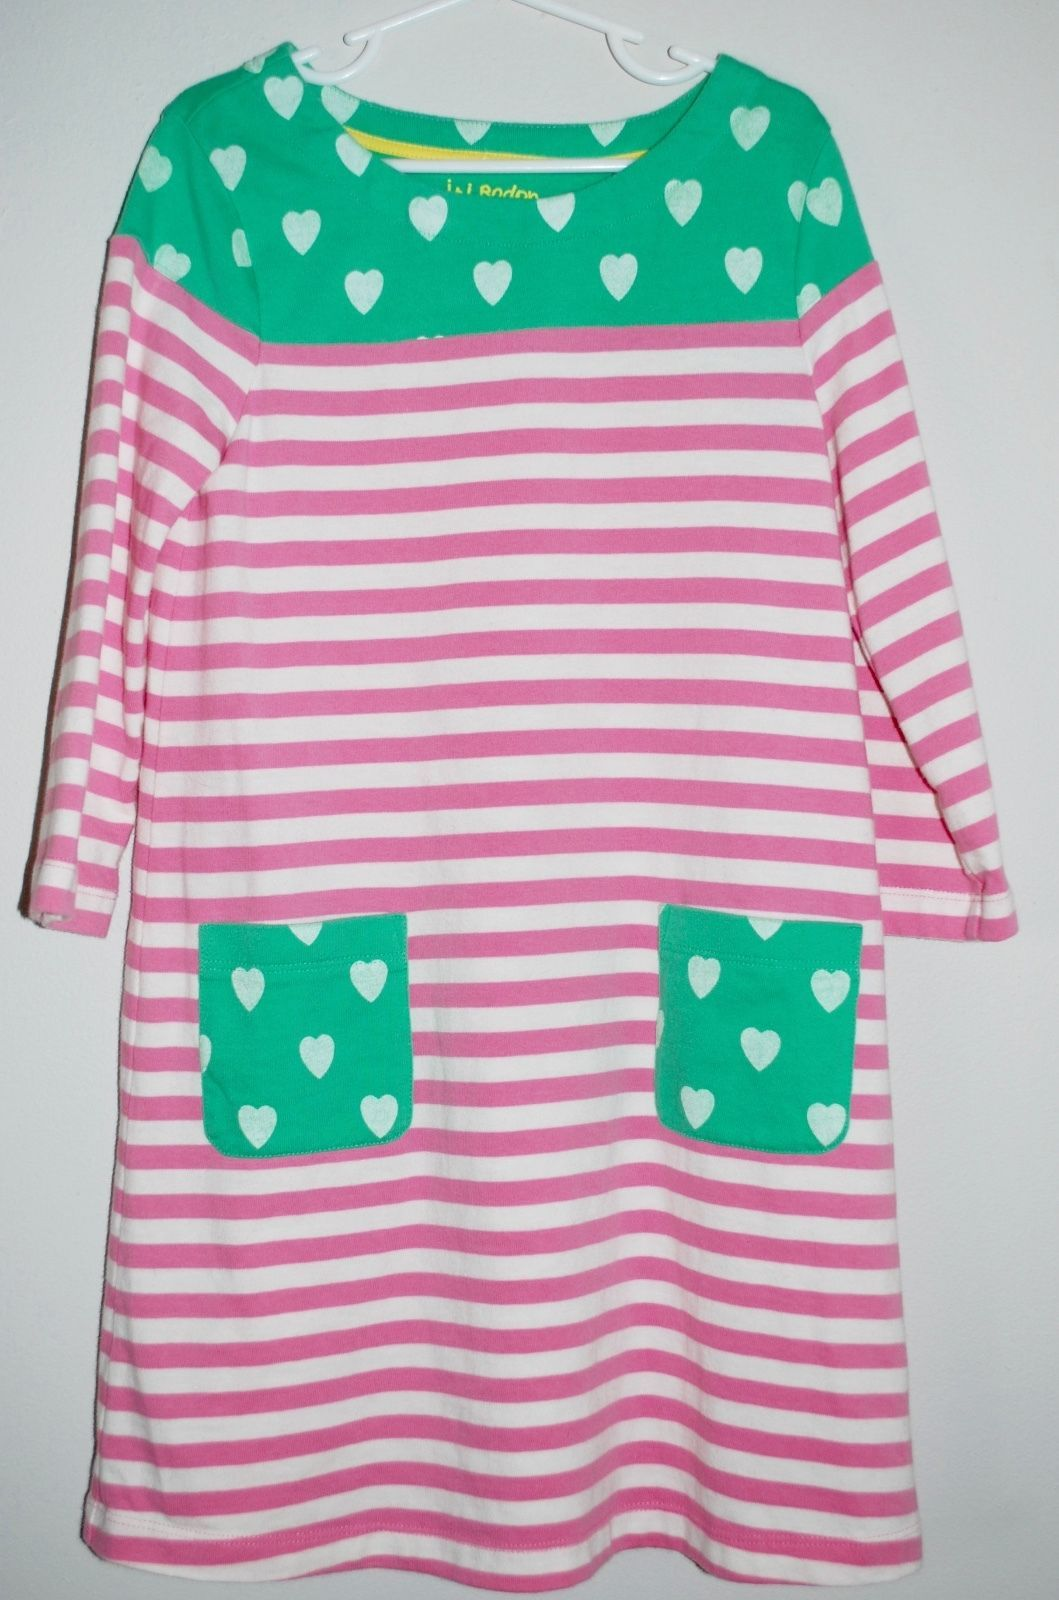 Dresses Girls' Clothing (2-16 Years) Mini Boden Dress 7-8